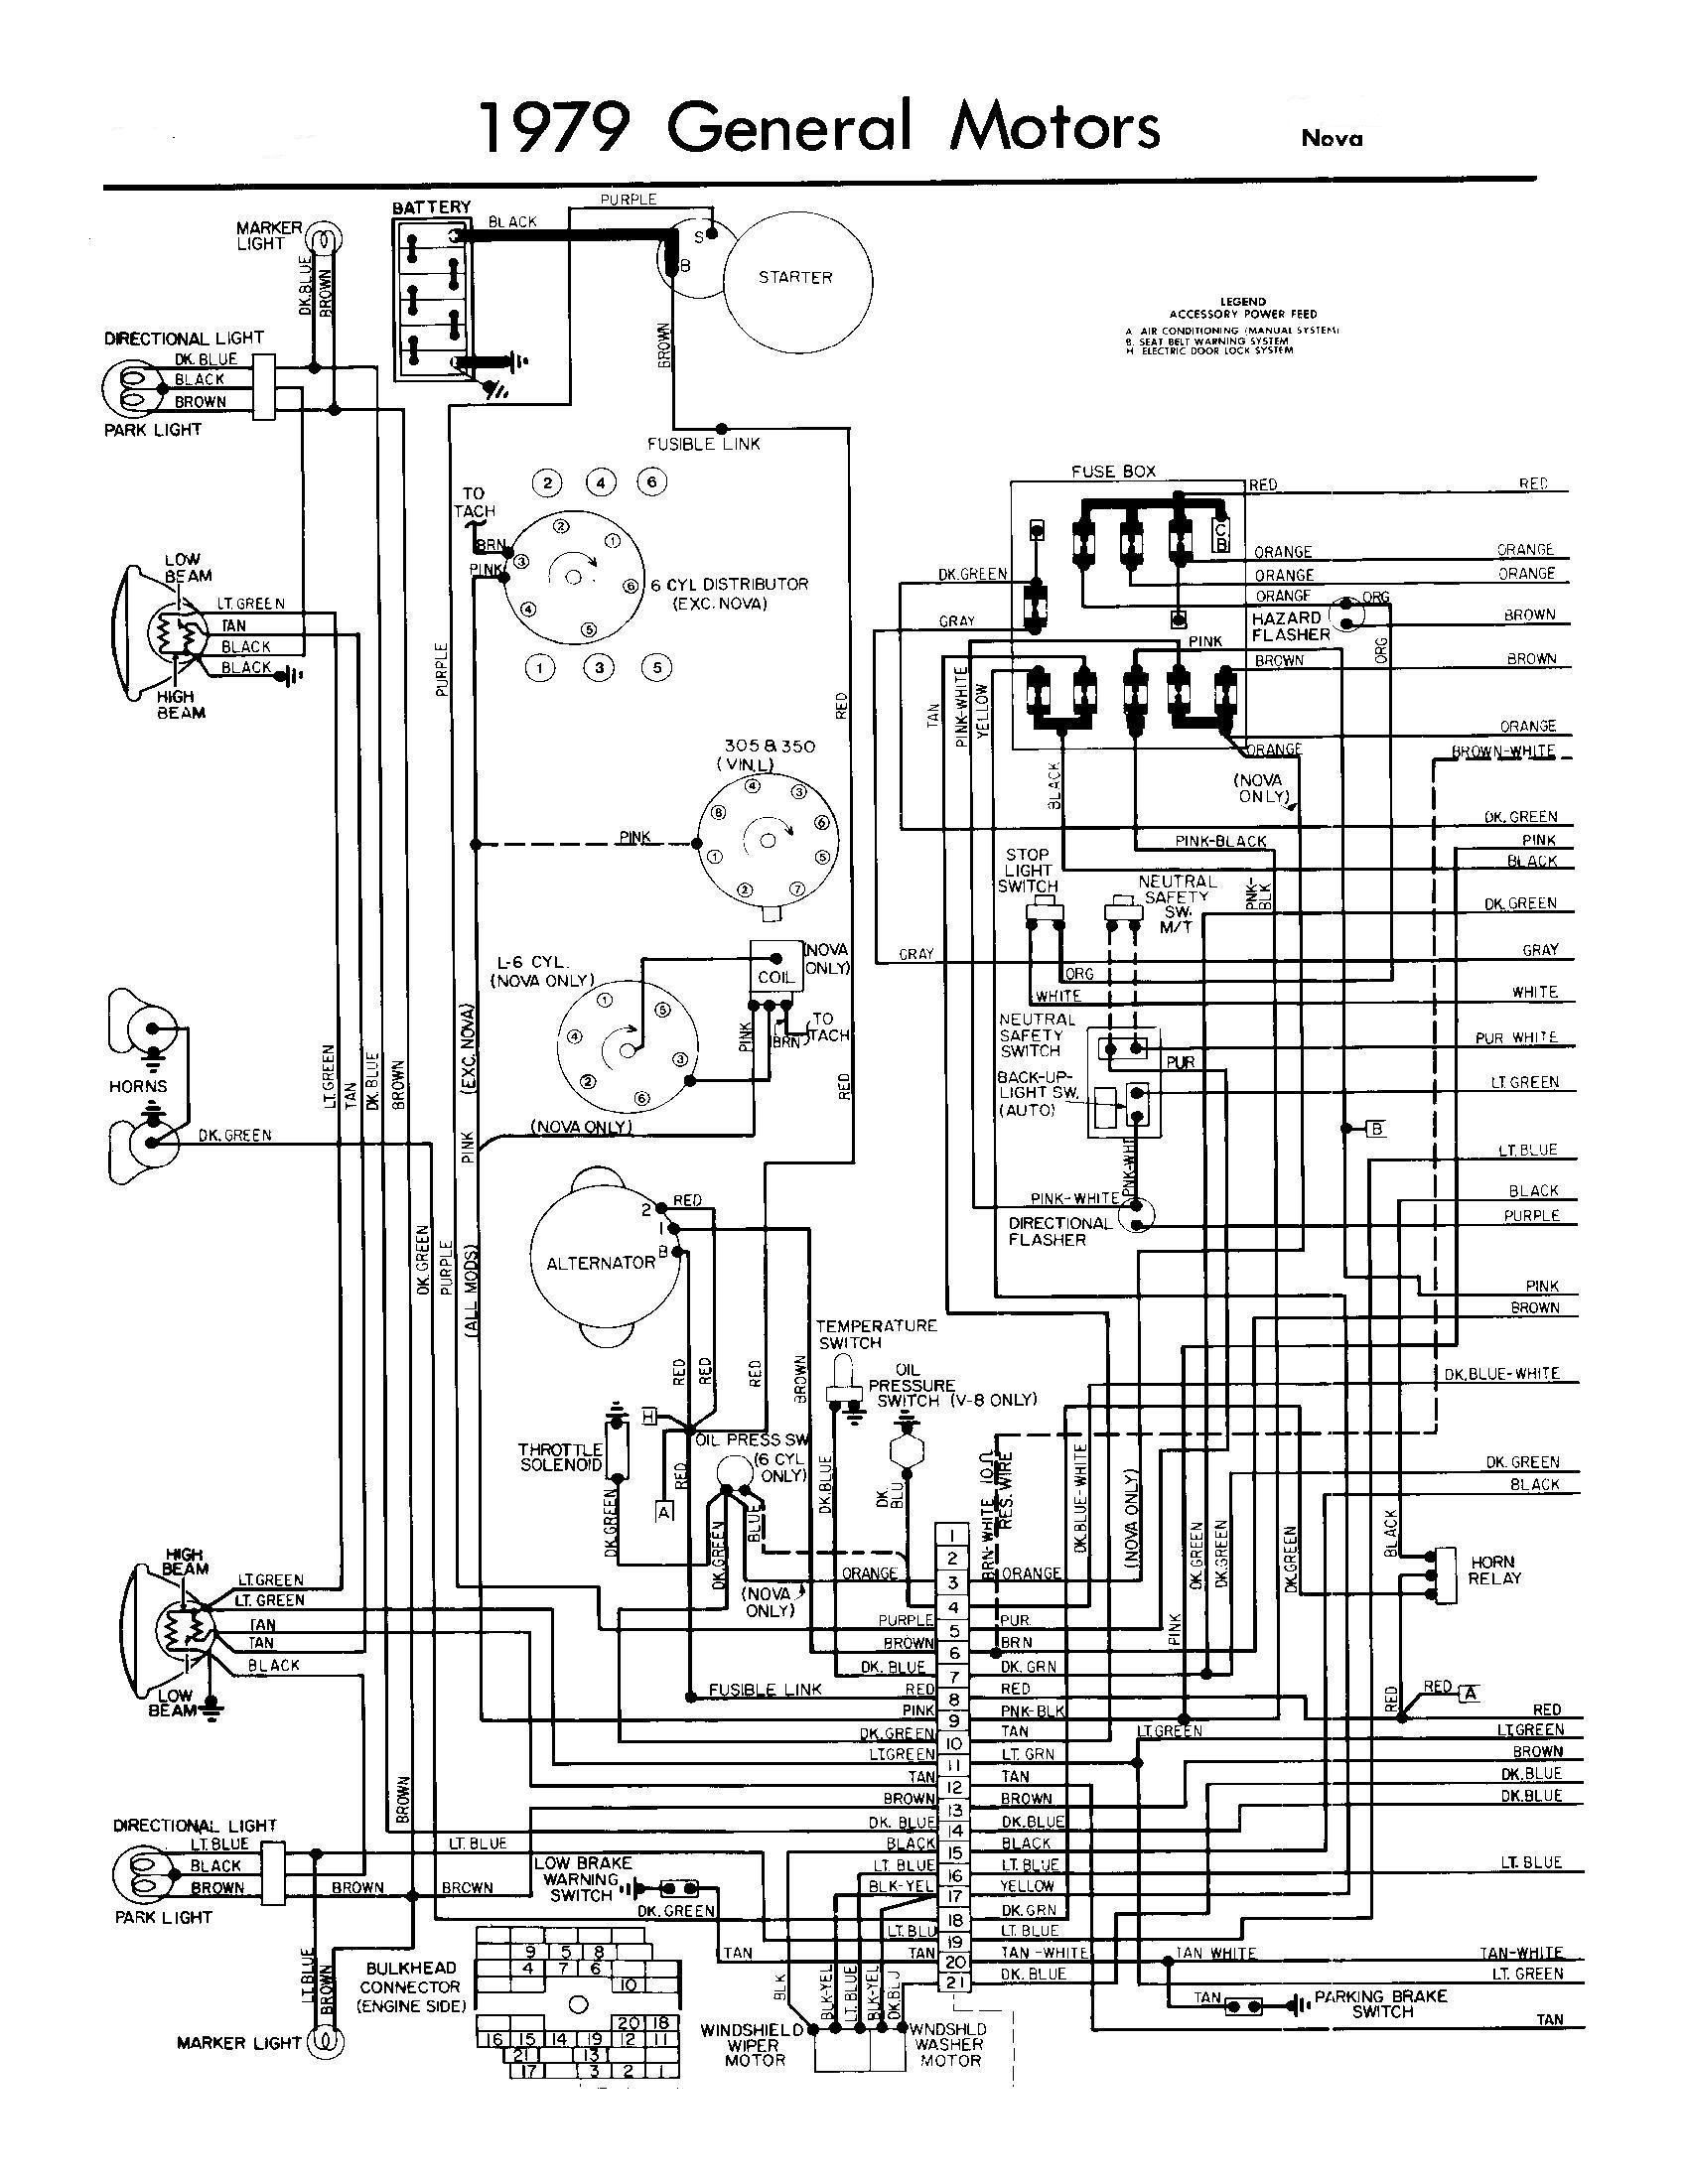 ignition switch wiring diagram of a 67 nova